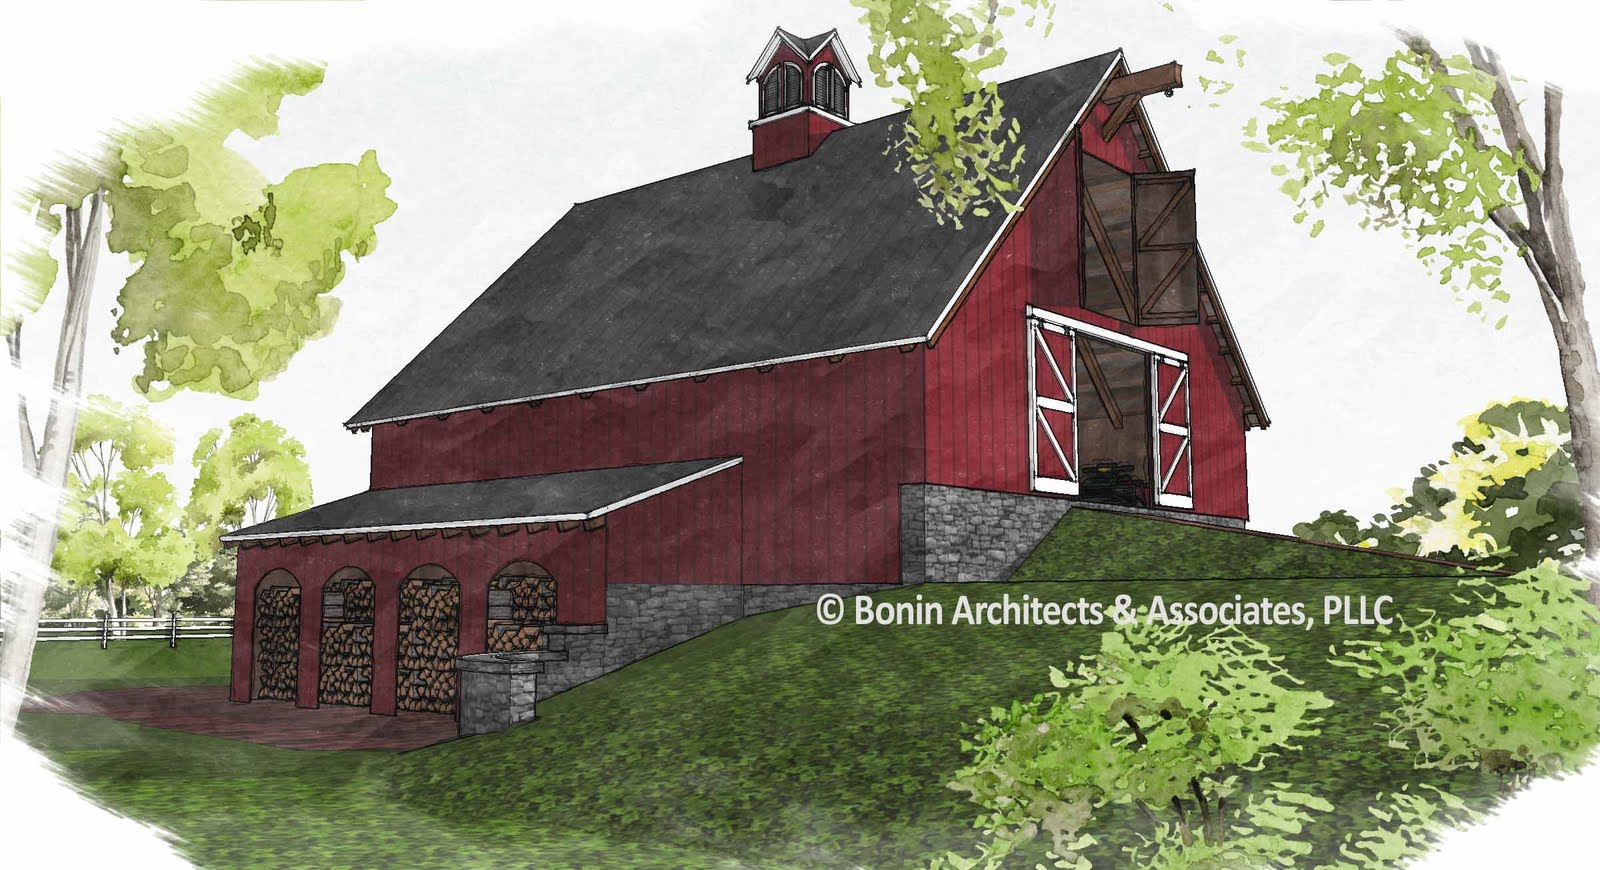 timber frame barn - photo #47